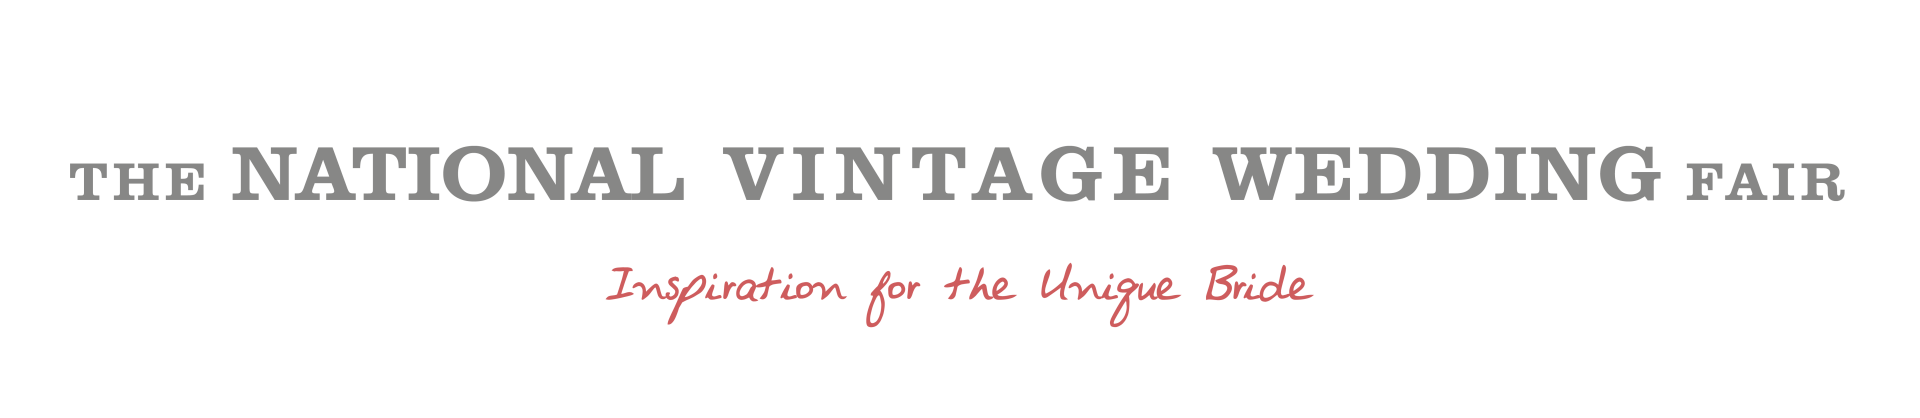 Vintage Wedding Fair